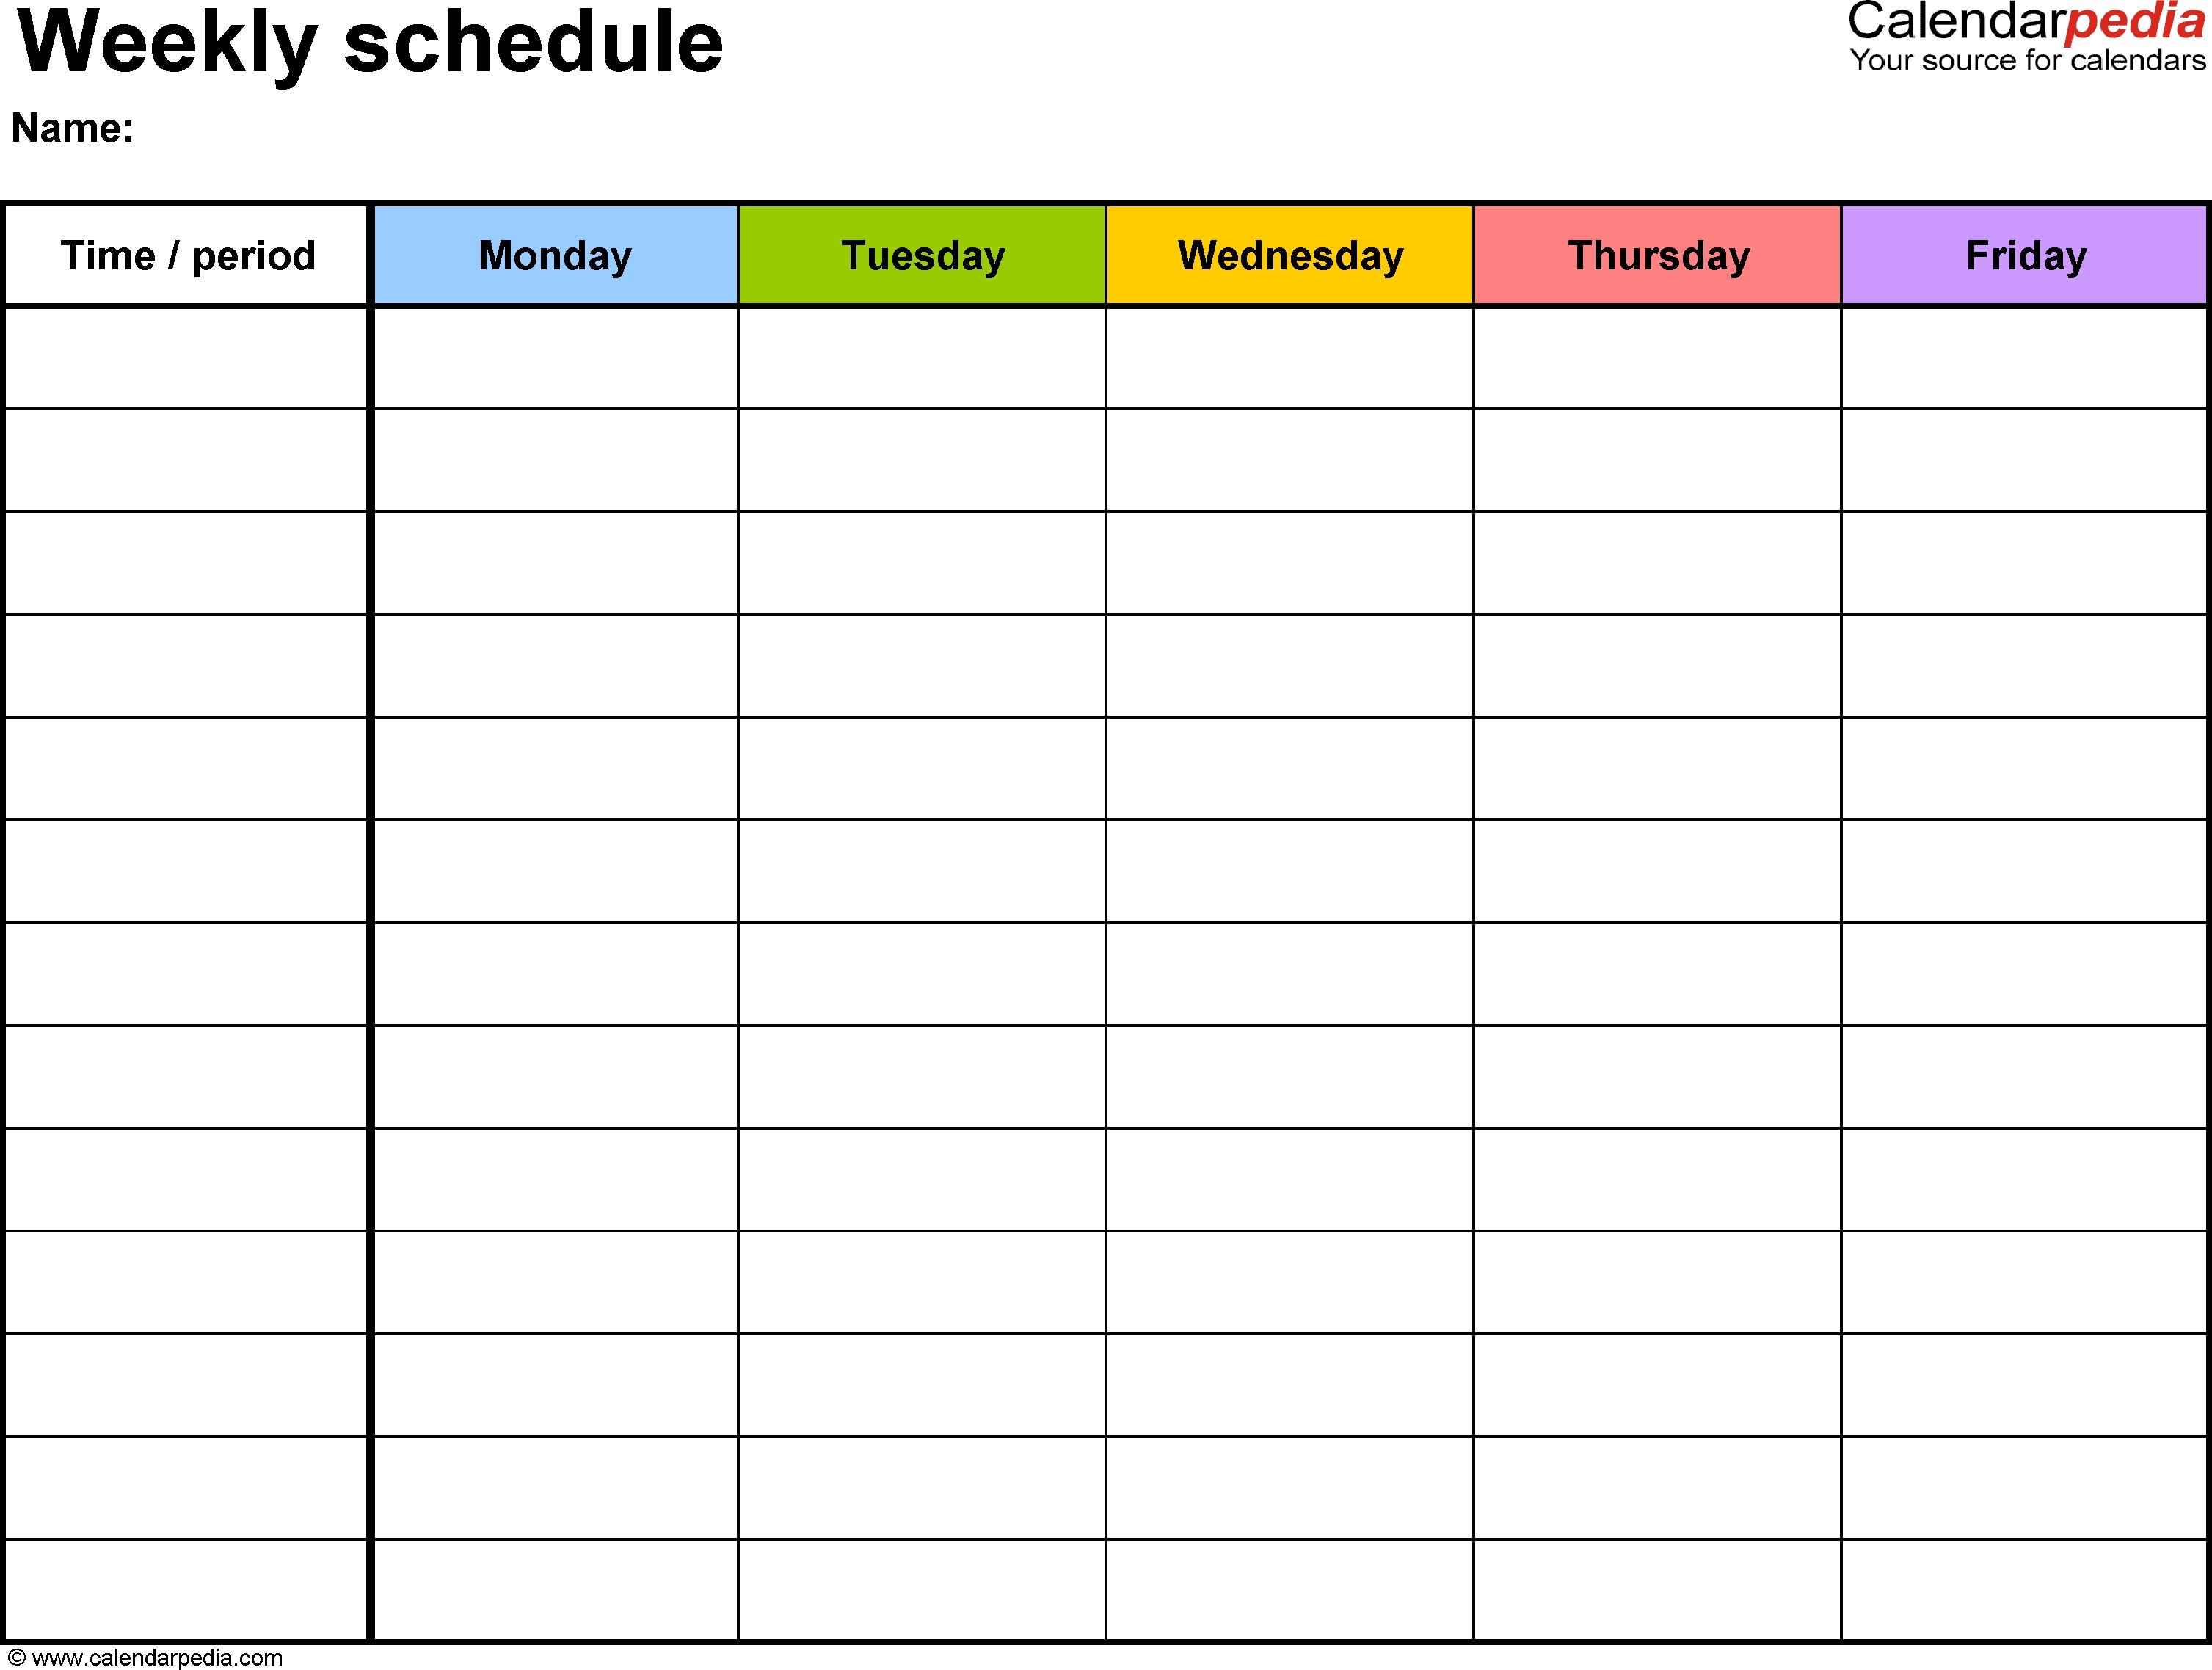 Free Weekly Schedule Templates For Pdf - 18 Templates within Large 7 Day Printable Schedules